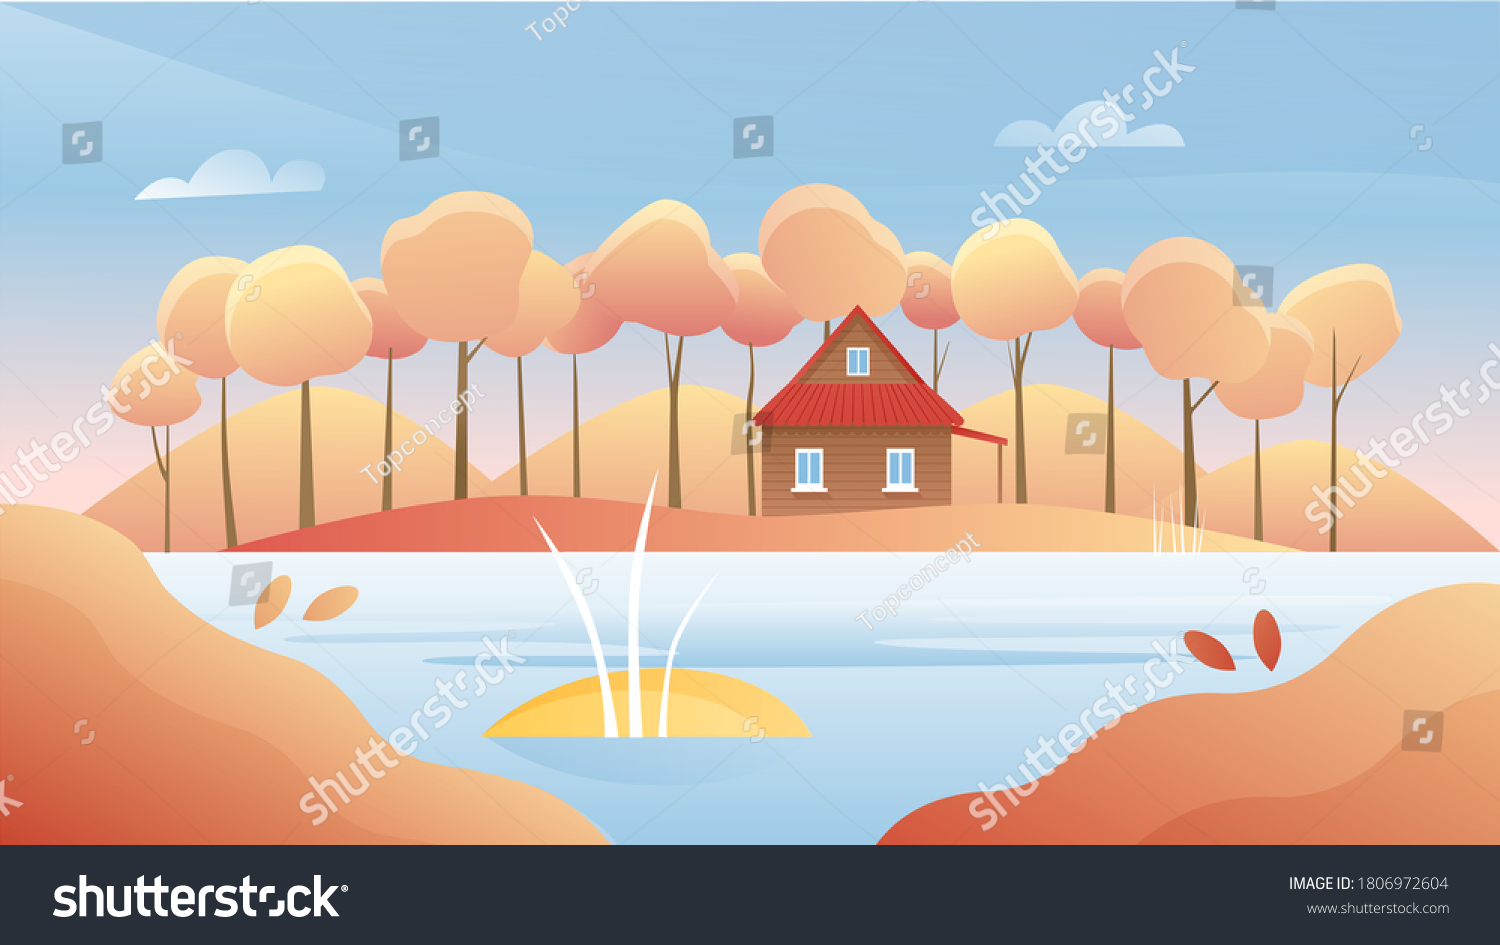 Autumn river landscape vector illustration. Cartoon flat autumnal sunny day, panorama nature woodland scenery with forest trees, rural wooden house on riverbank, fall season scenic woods background